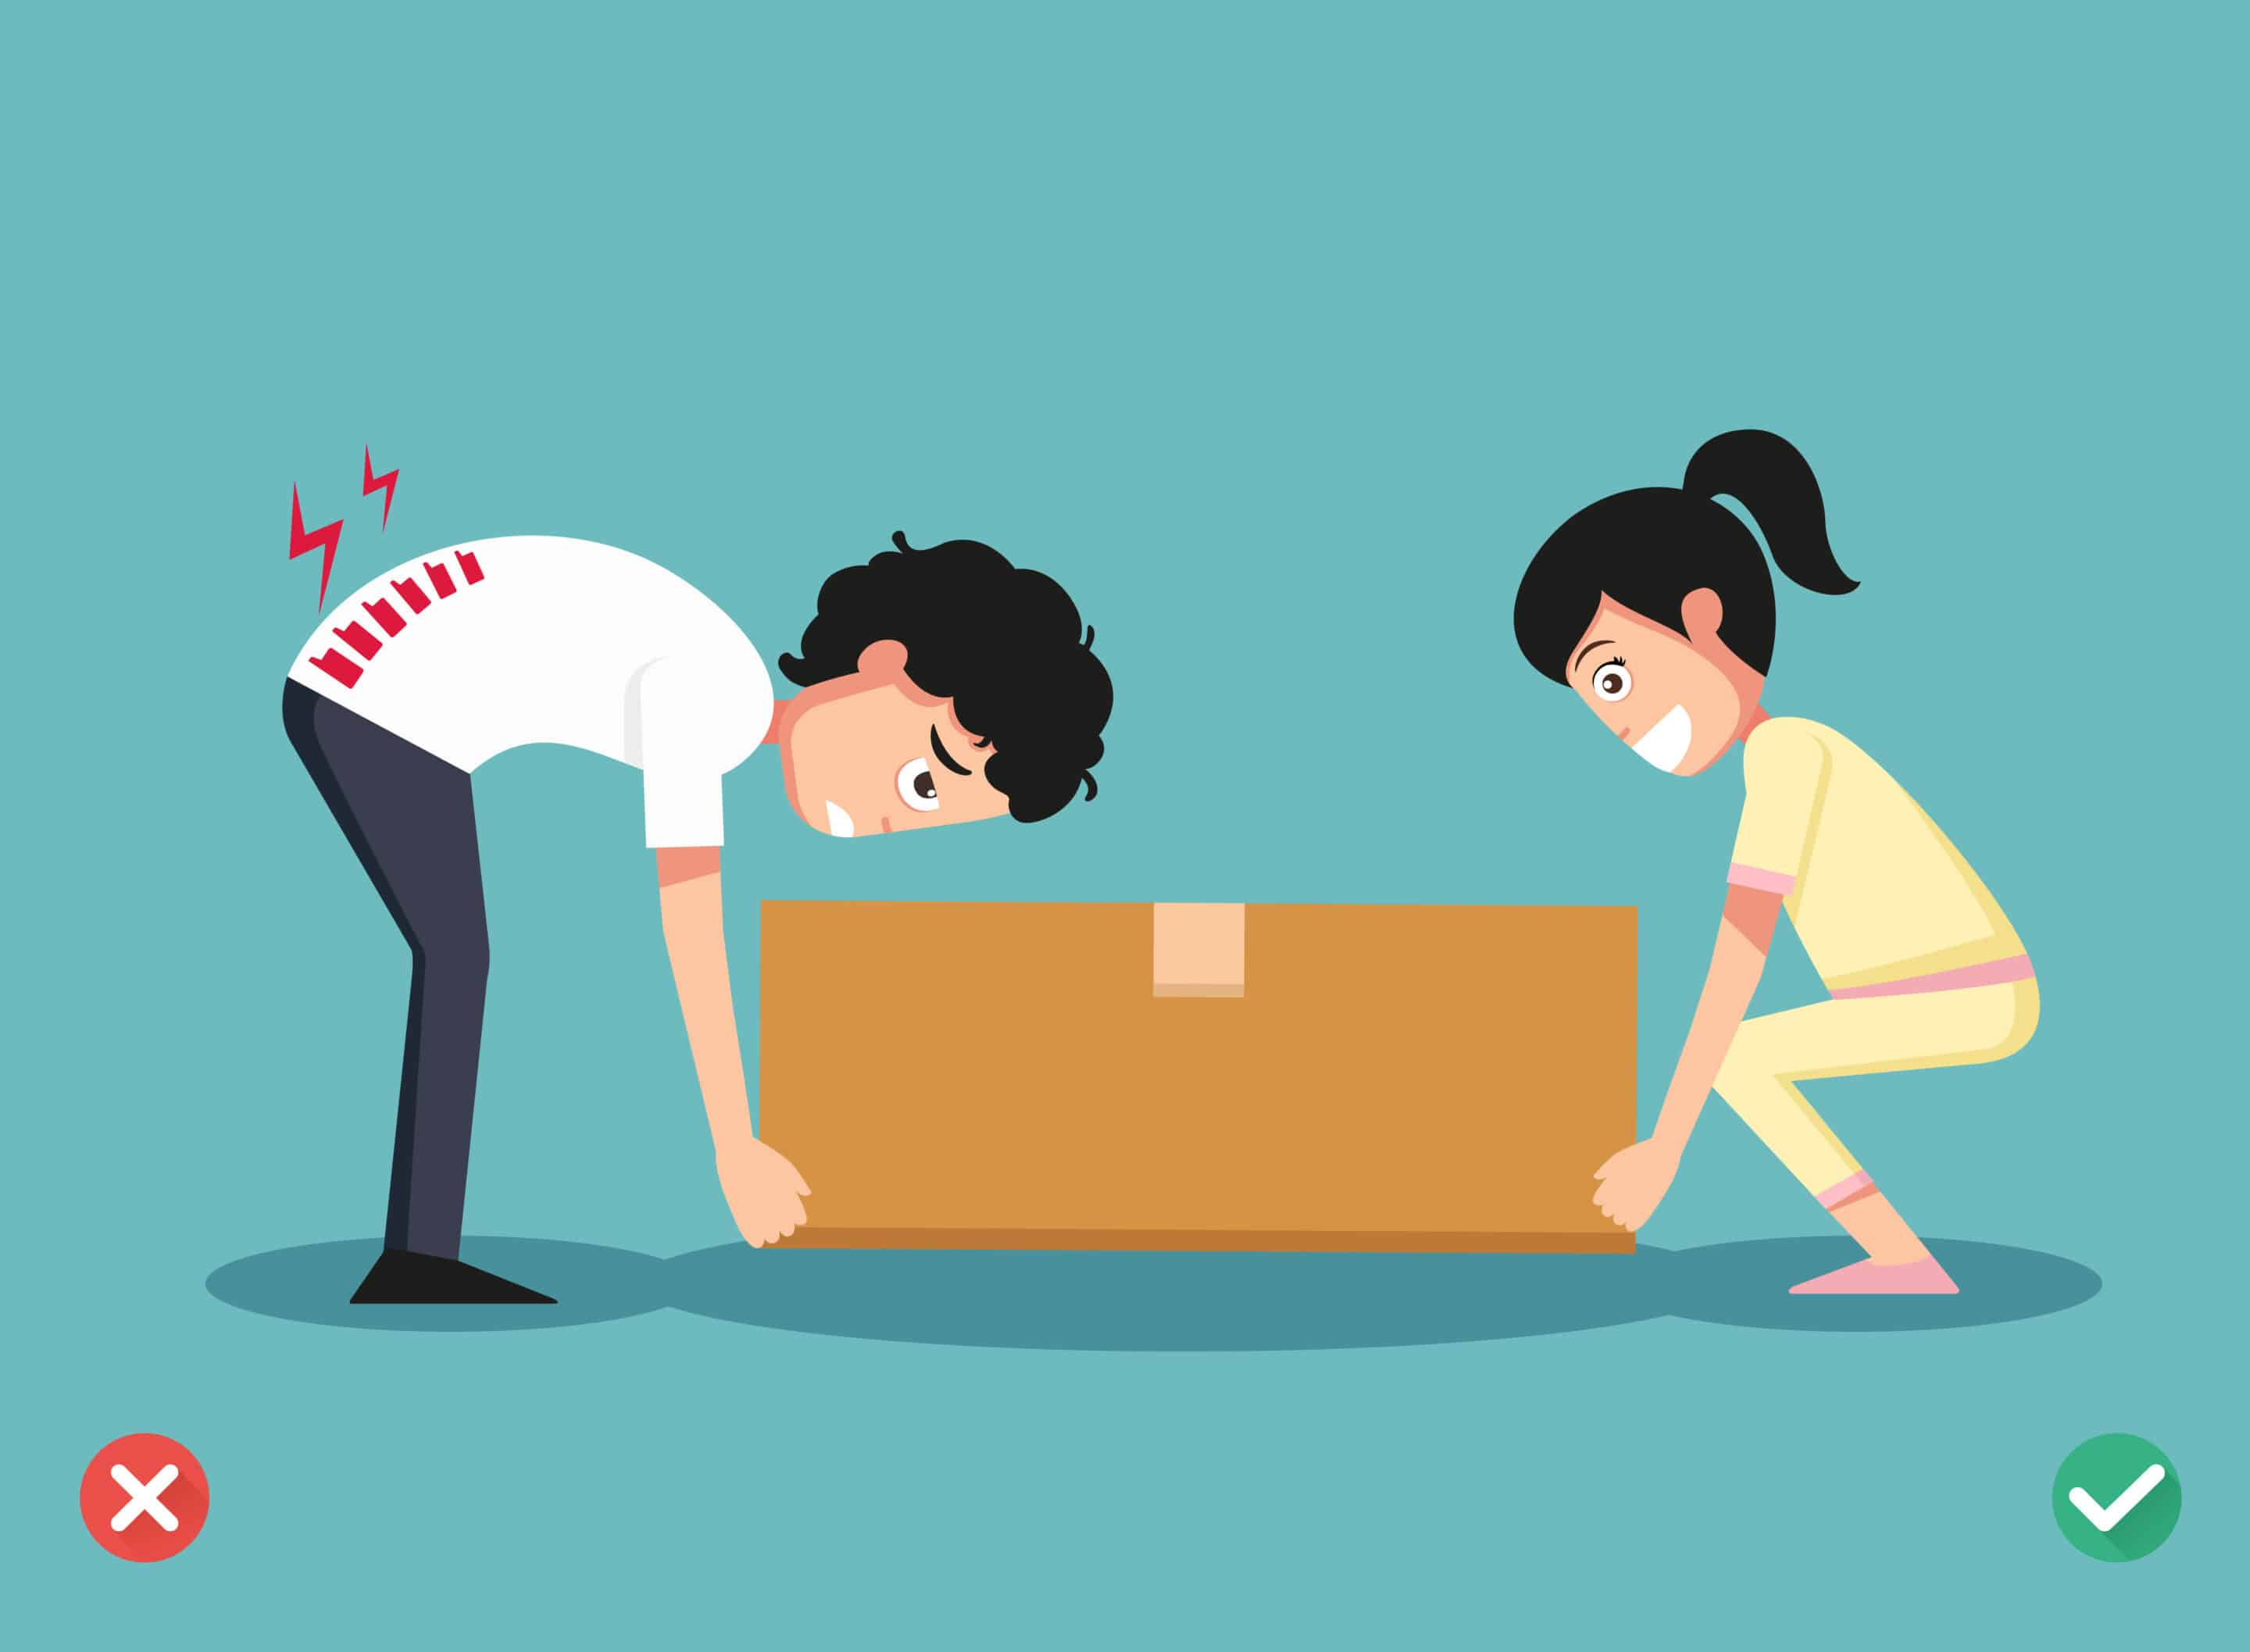 manual handling accidents